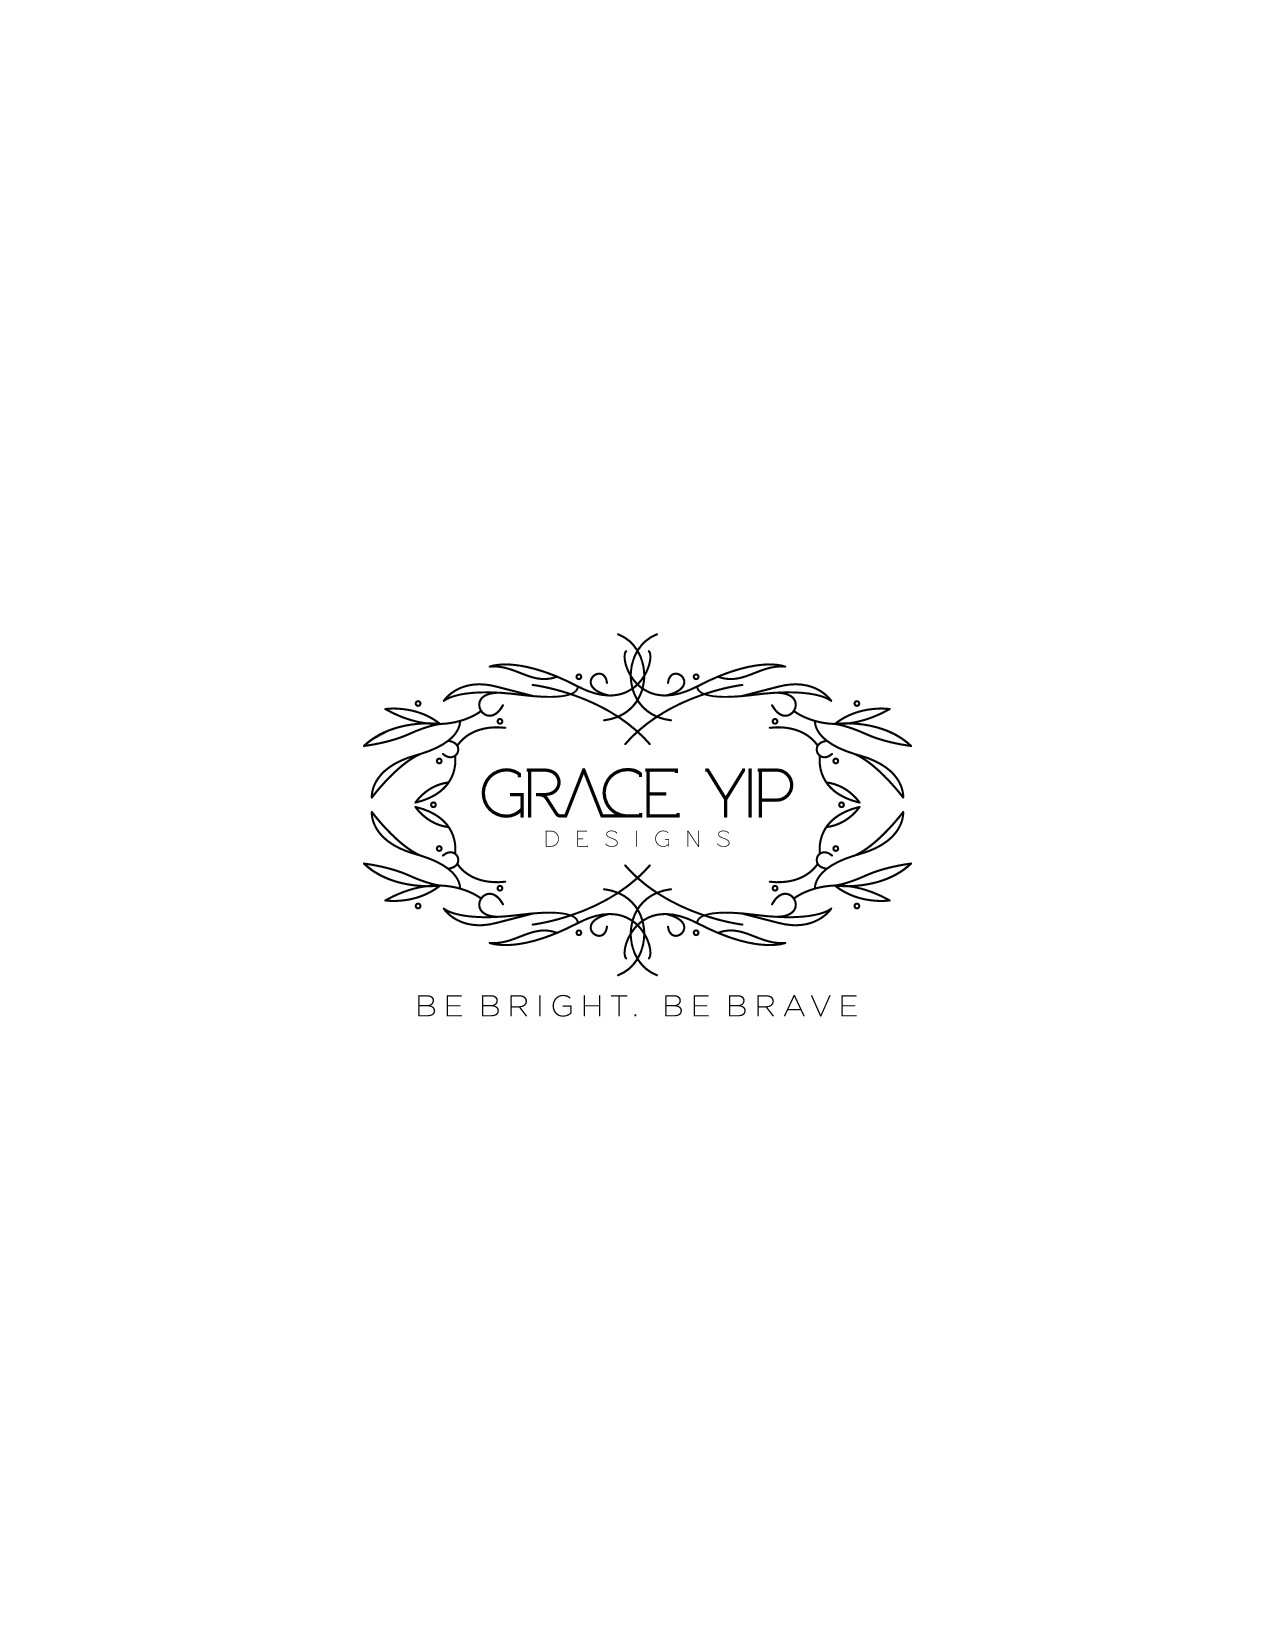 Be Bright. Be Brave